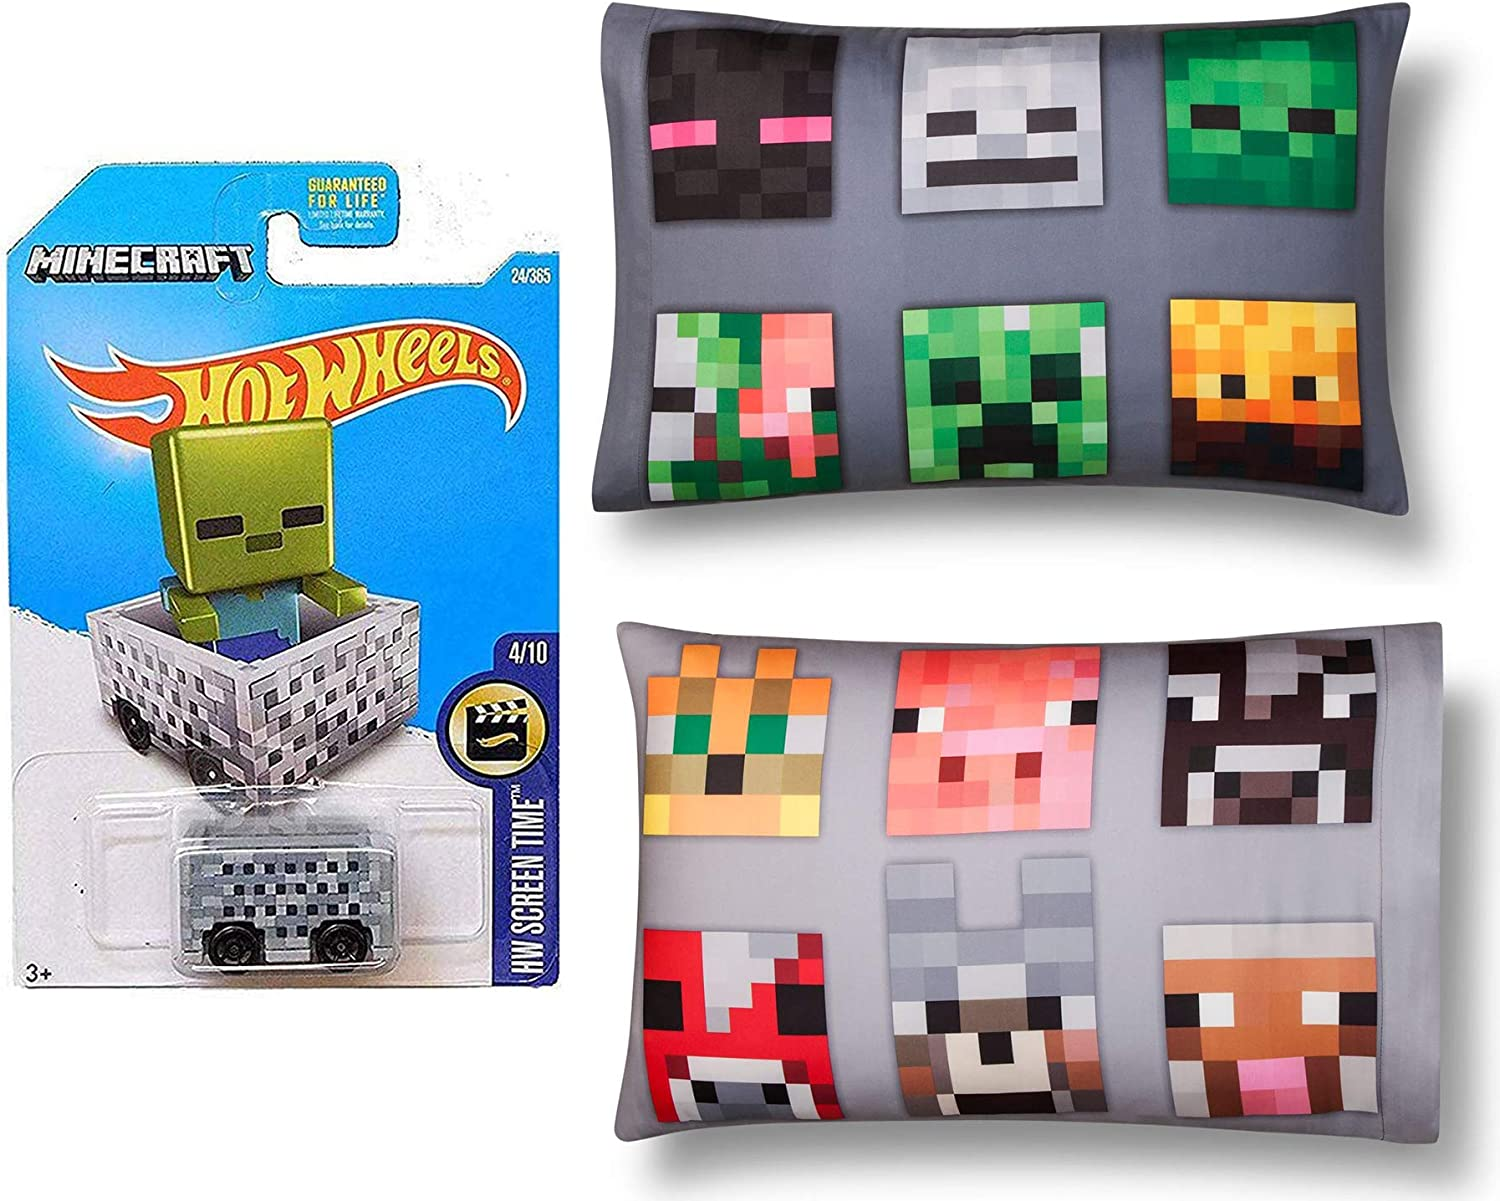 Hot Wheels Adventure Room Cart Compatible Minecraft 8-Bit Minecart die-cast Bundled with 2 Face Pillow Cases Bed Character Creature Series 3 Items: Amazon.es: Juguetes y juegos